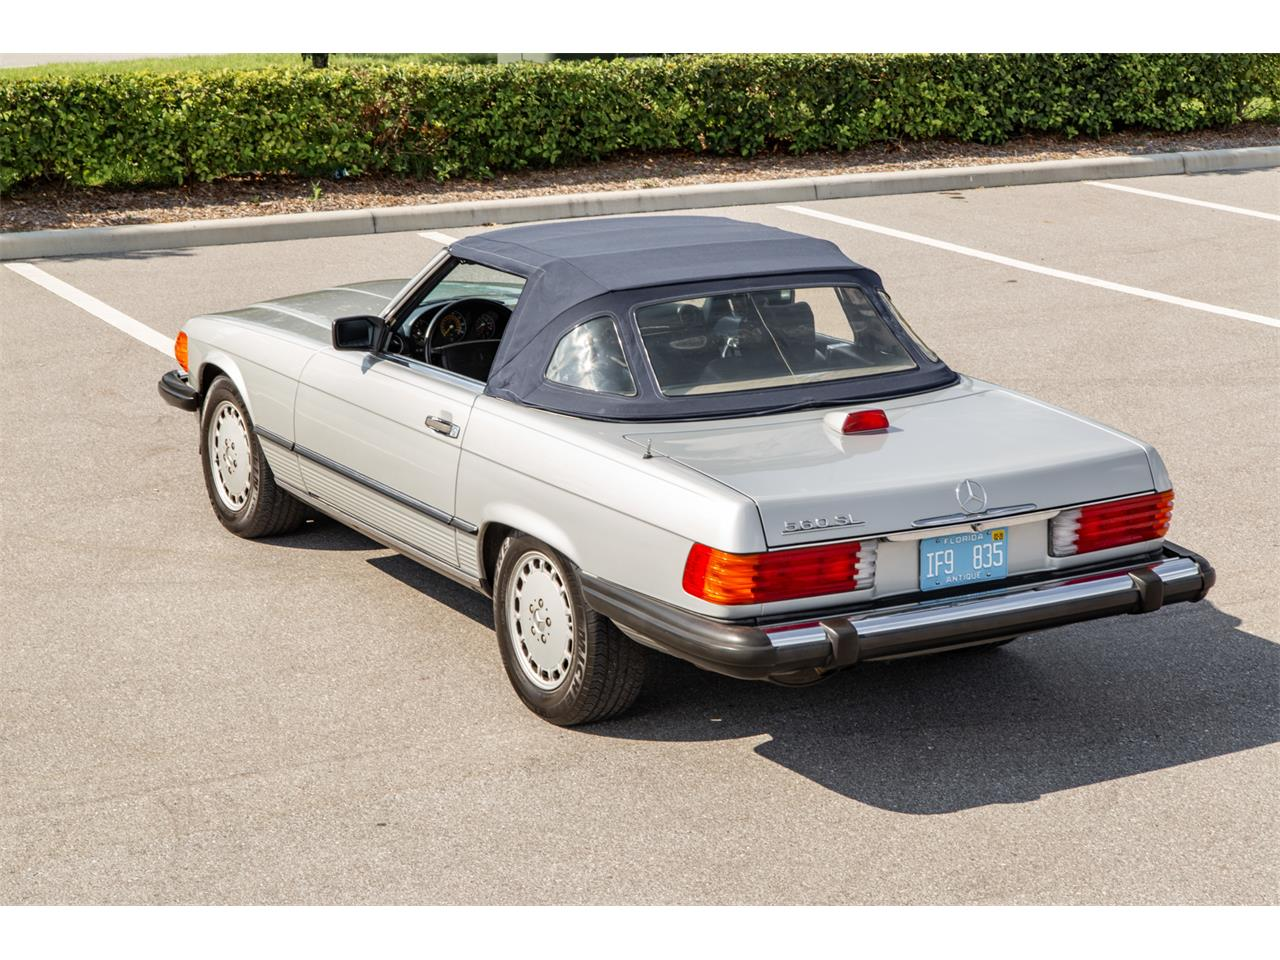 Large Picture of 1987 Mercedes-Benz 560SL located in Orlando Florida Auction Vehicle Offered by Bring A Trailer - R1P5